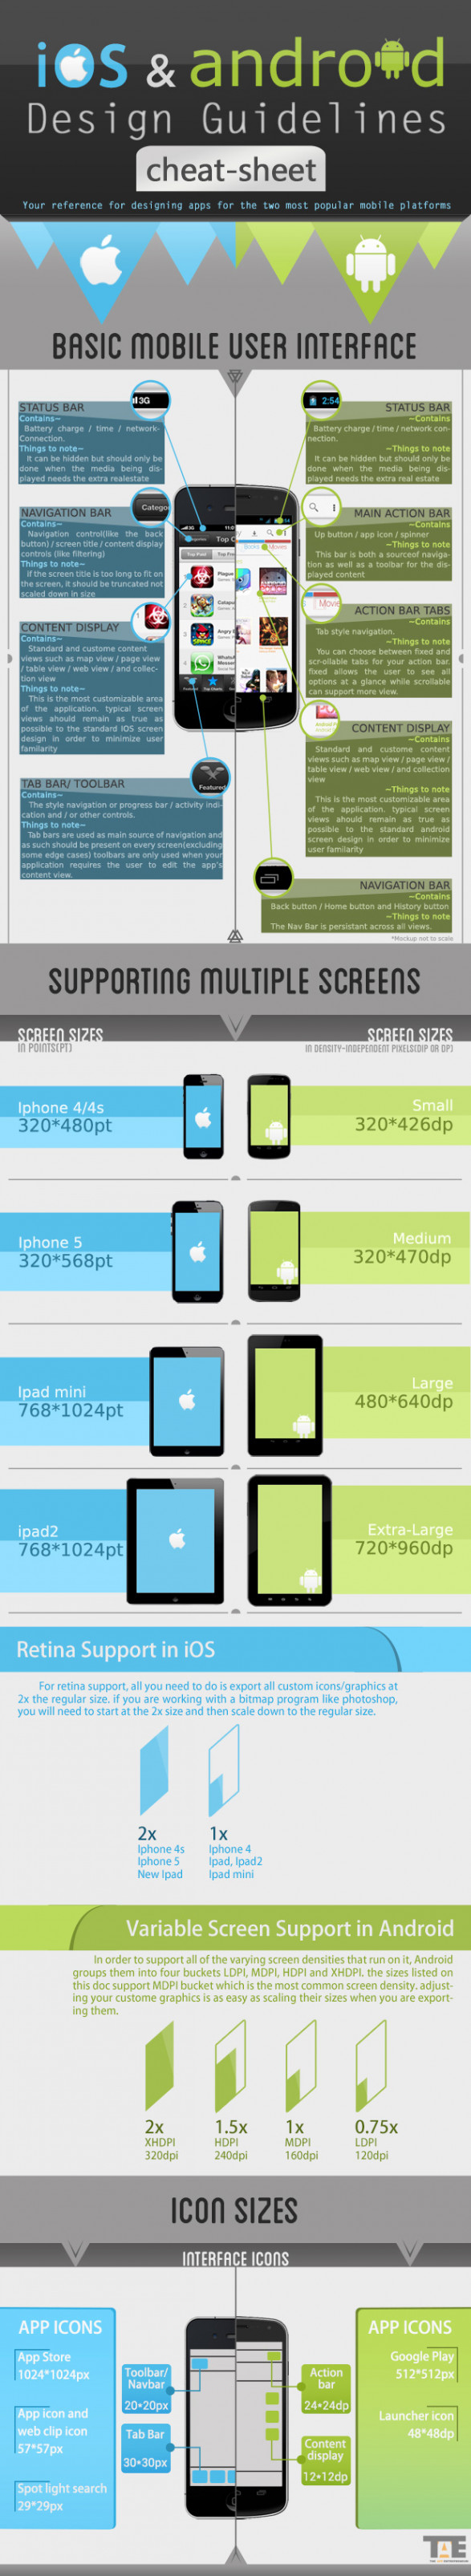 iOS And Android Design Guidelines